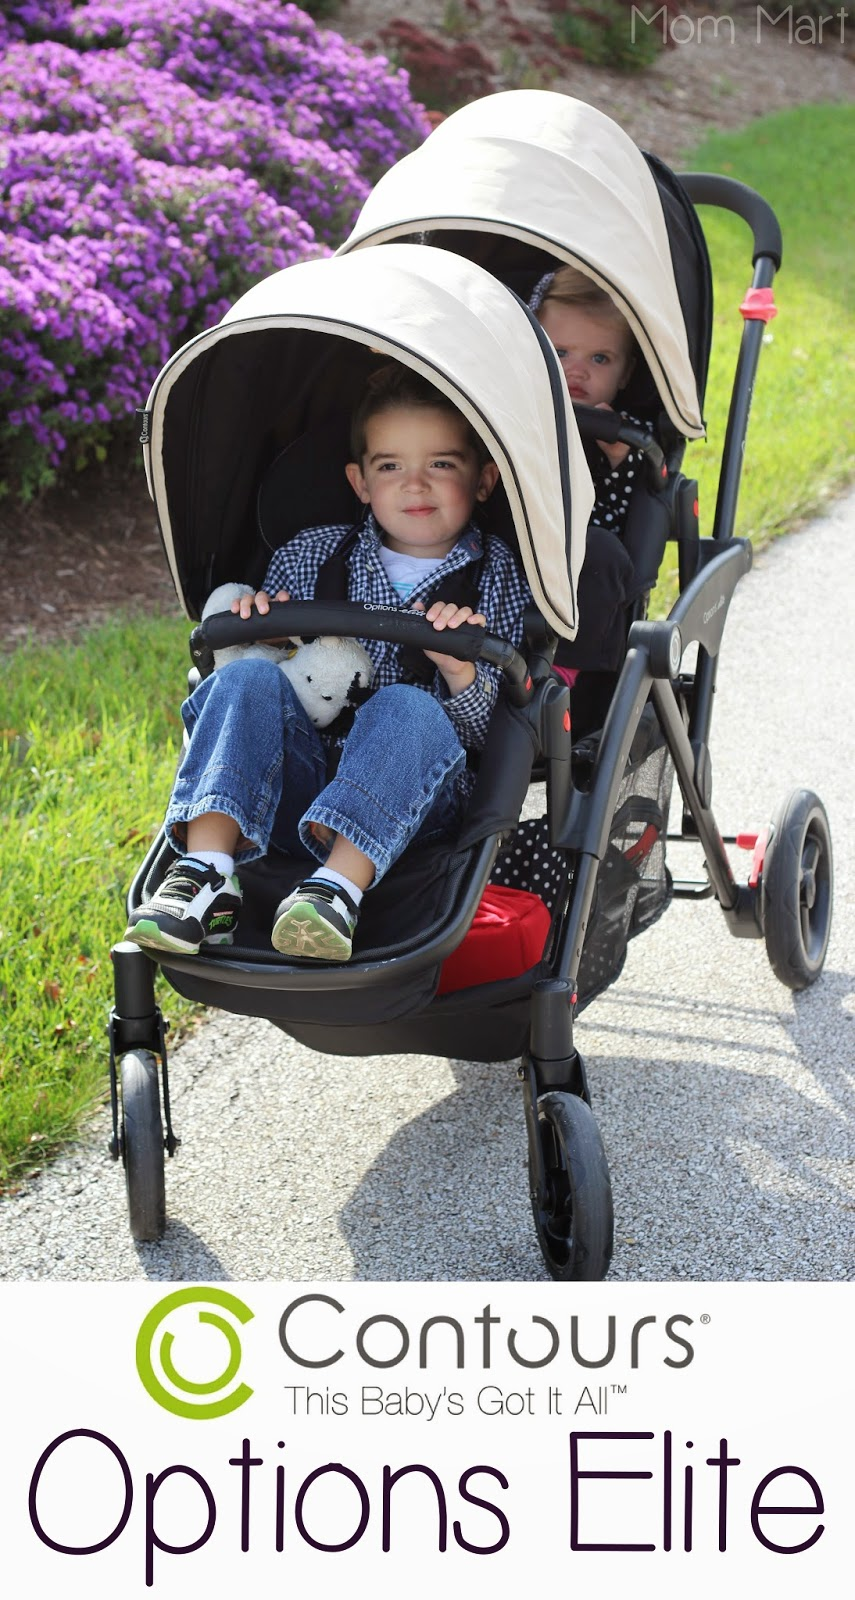 Mom Mart: Contours Options Elite Tandem Double Stroller